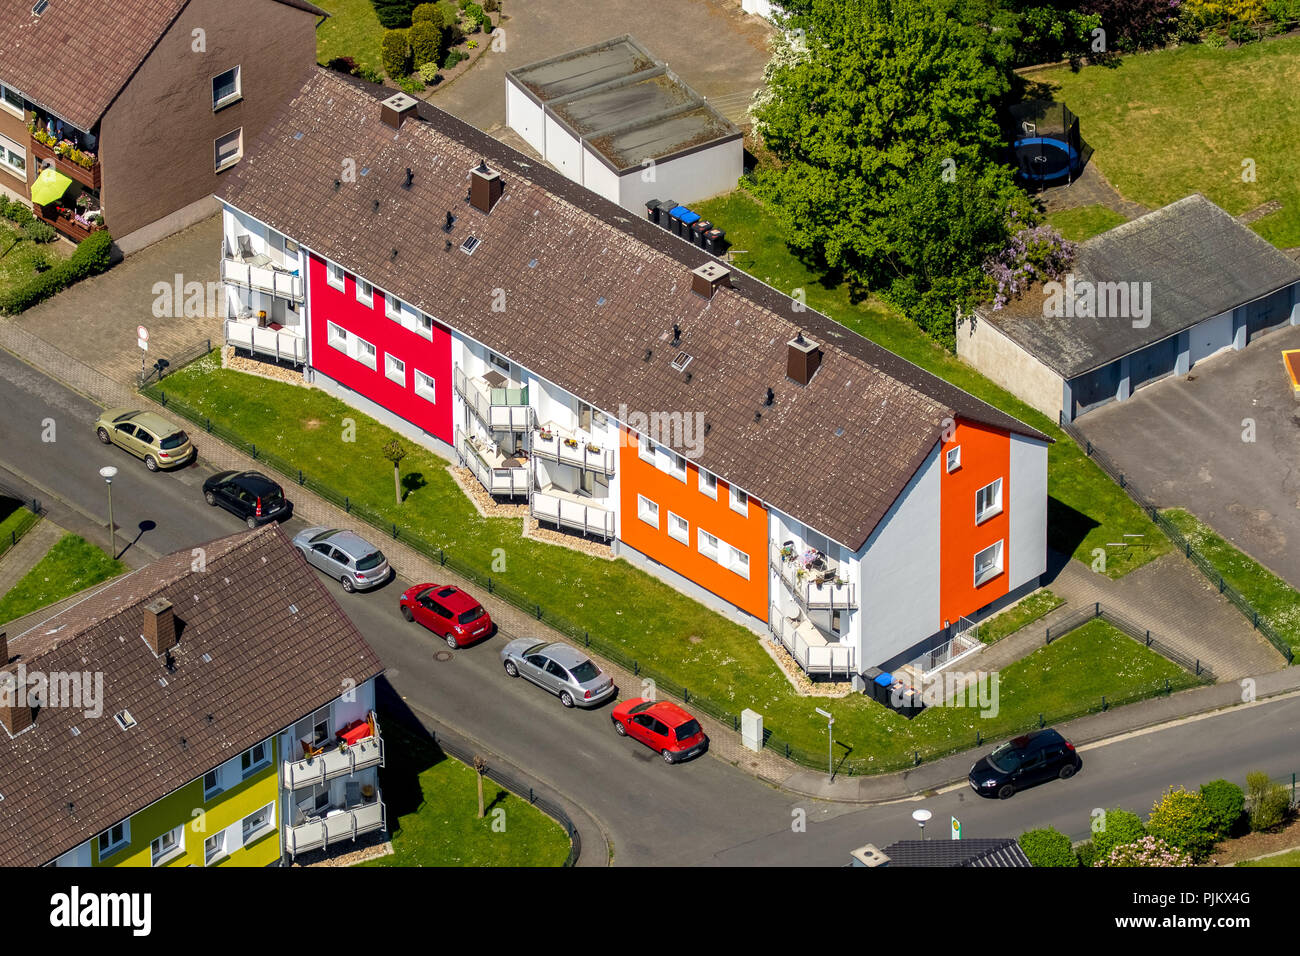 Tenement houses as participants in a facade competition, rented apartment, block of flats, Hamm, Ruhr area, North Rhine-Westphalia, Germany - Stock Image